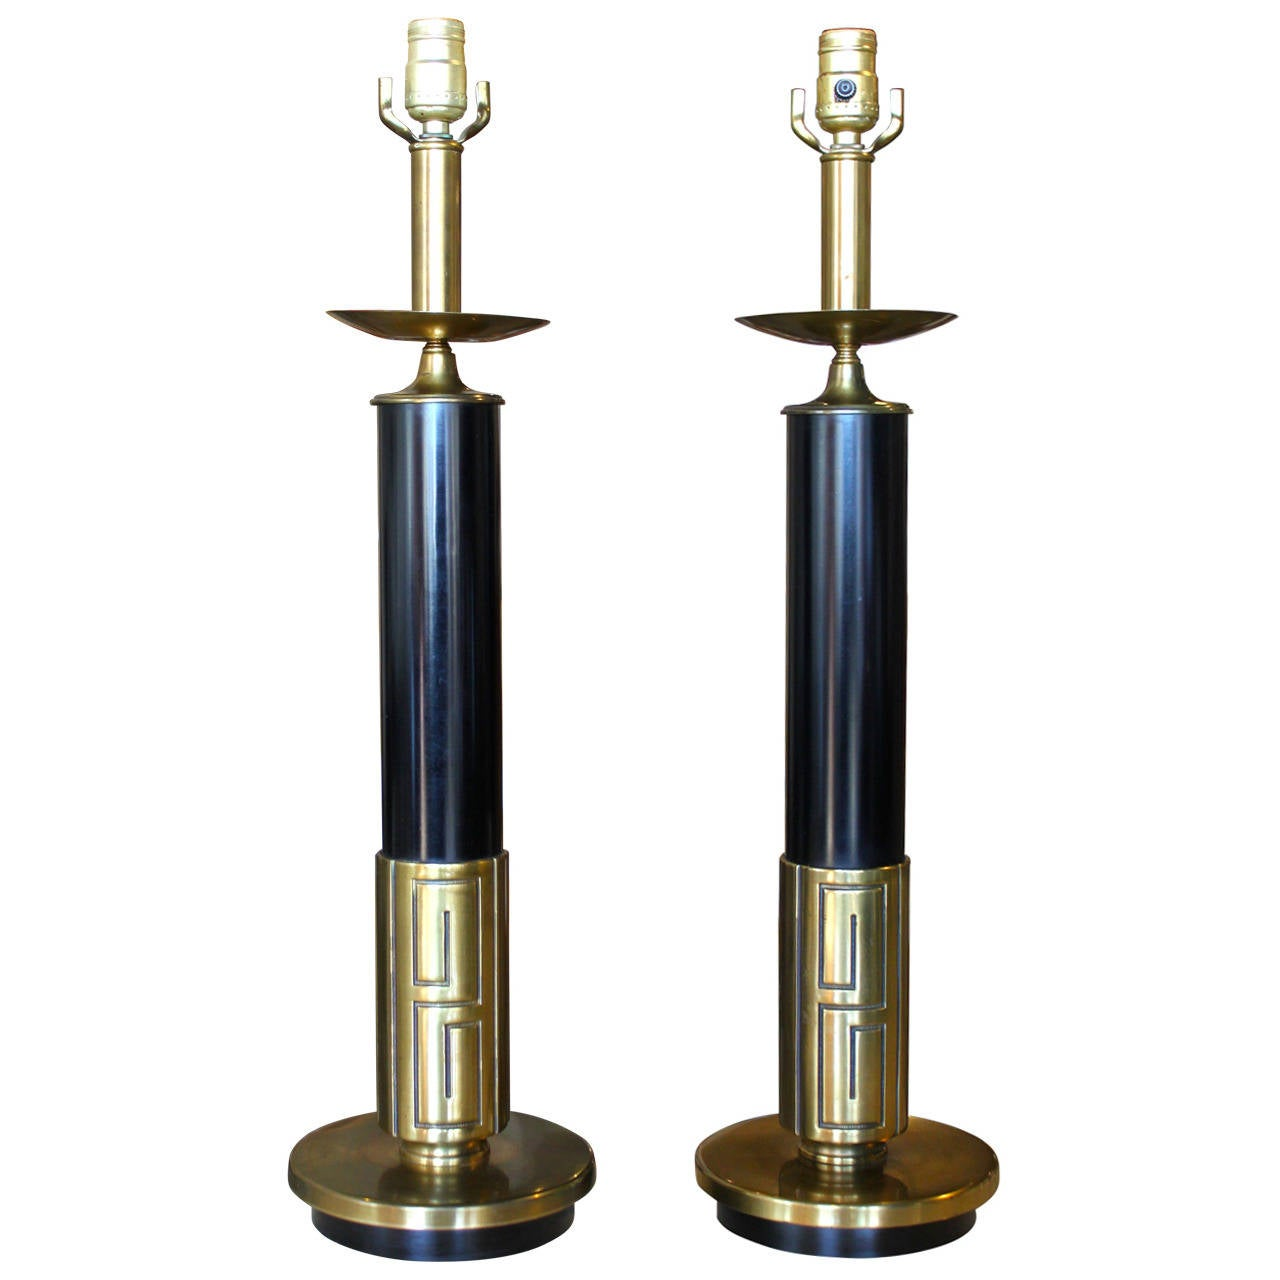 Pair of Mid-Century Modern Brass Lamps with Greek Key Motif 1